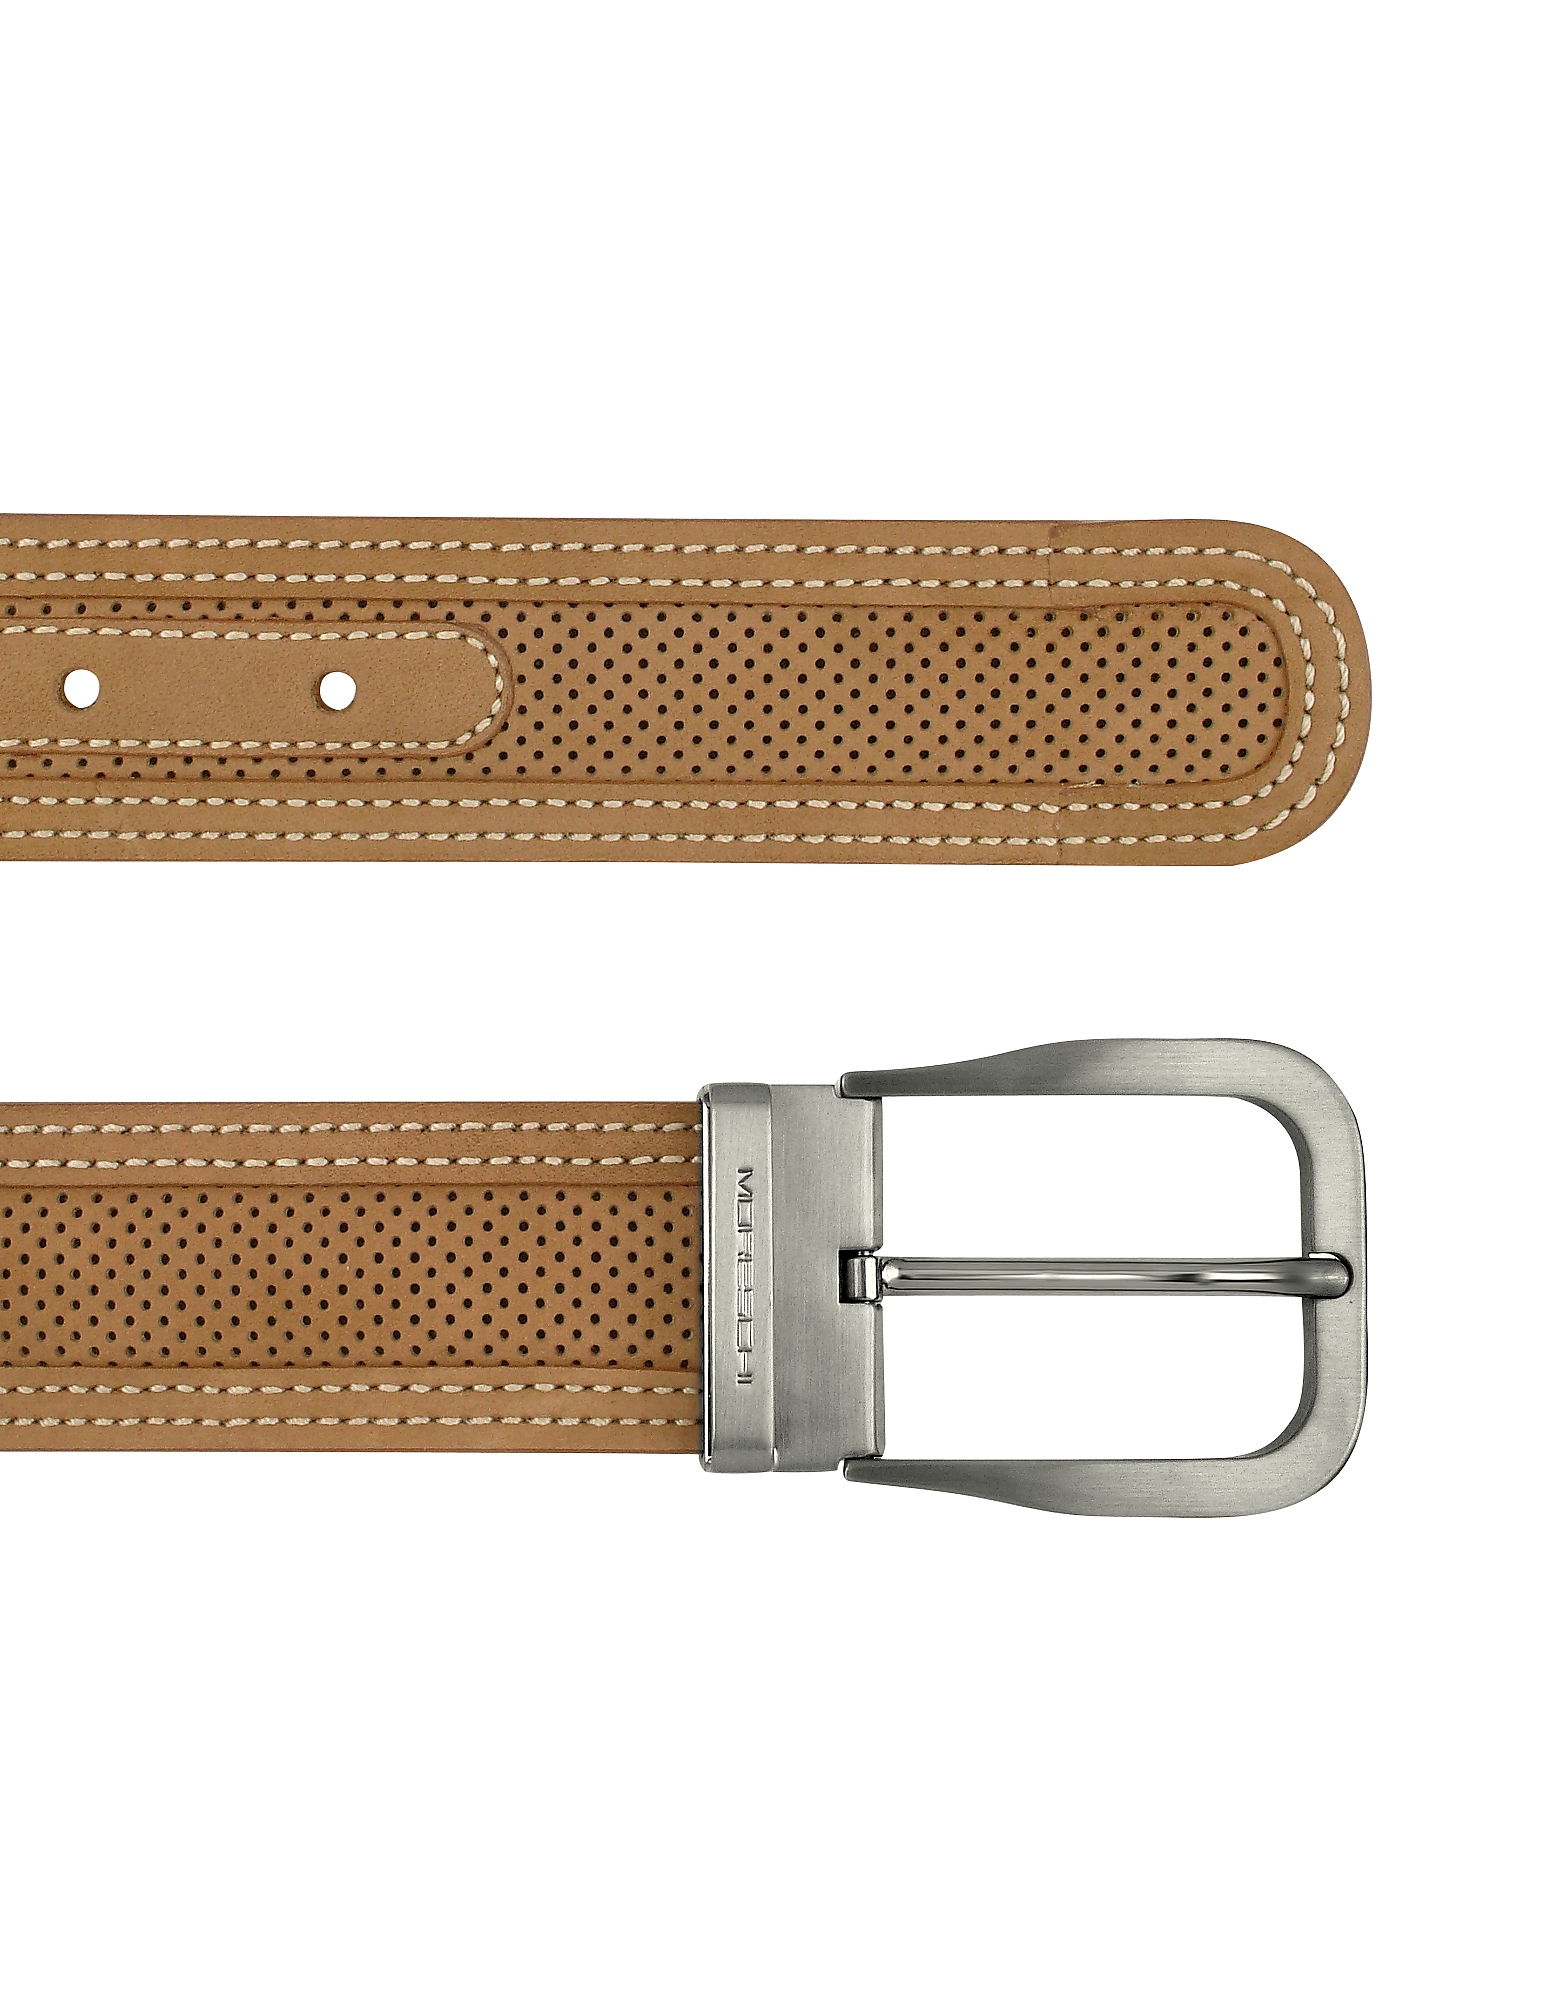 Moreschi Men's Belts, Men's Tan Perforated Leather Belt